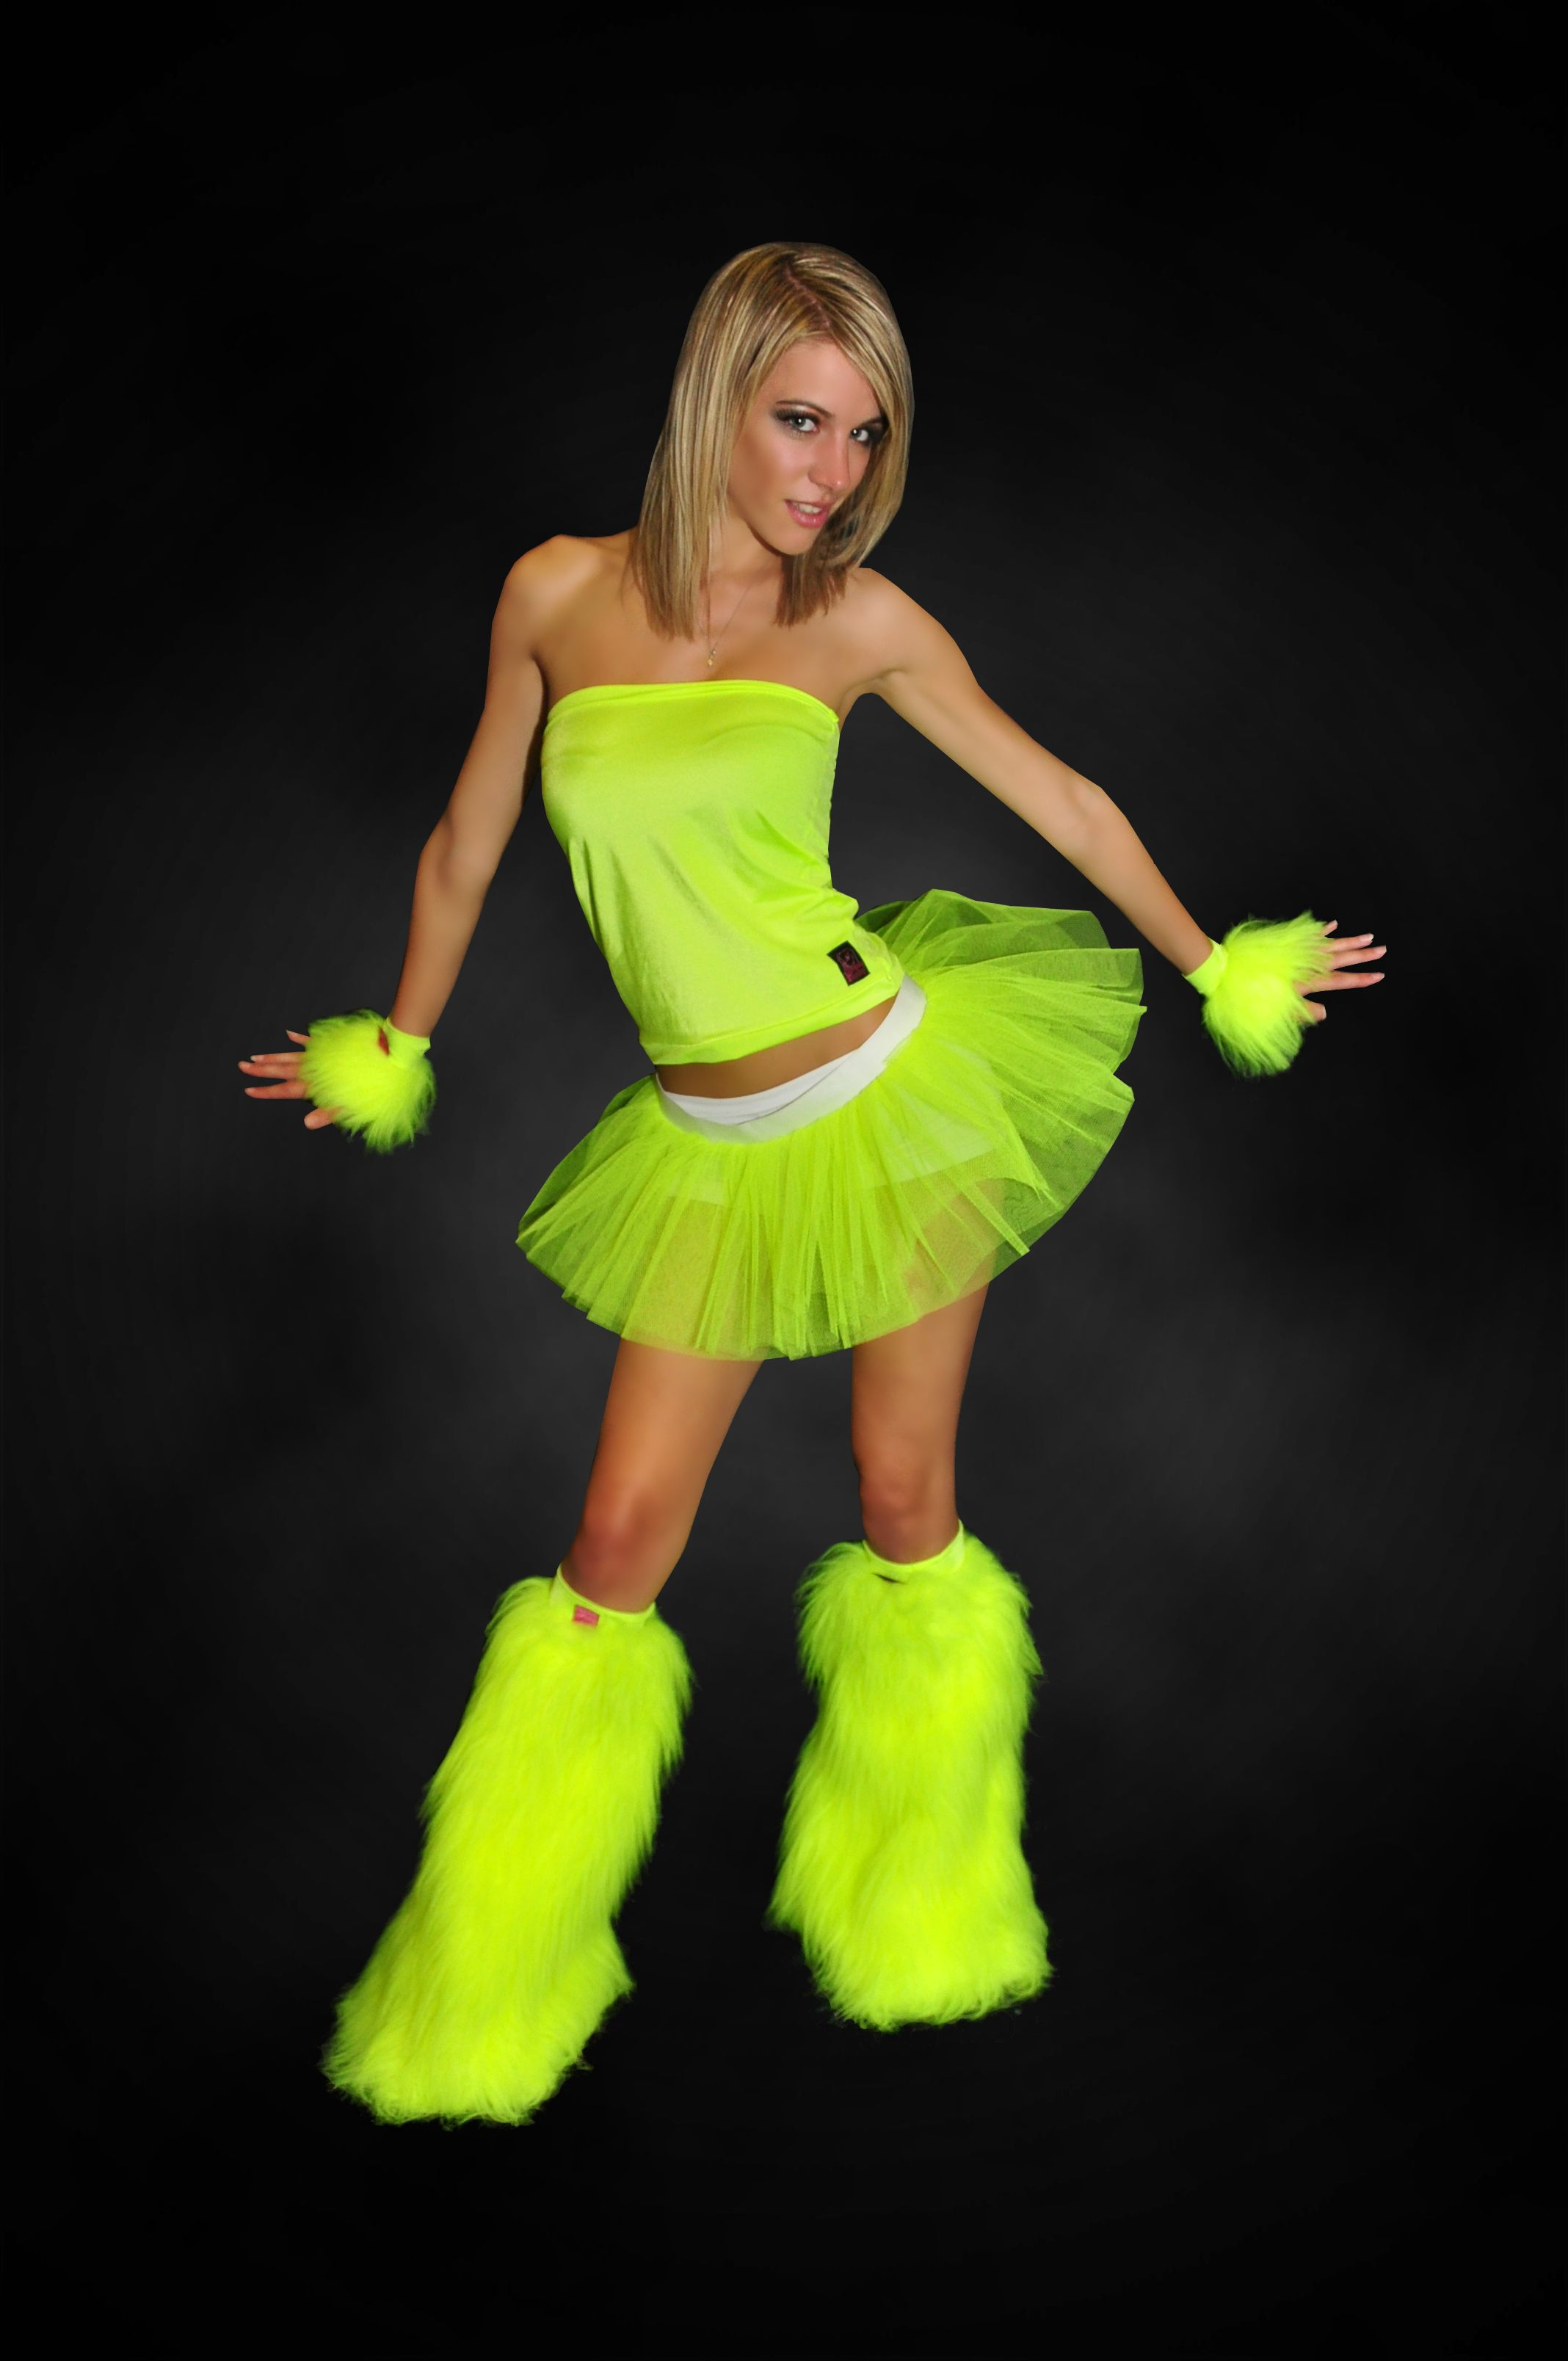 Neon Dance Outfit Ideas